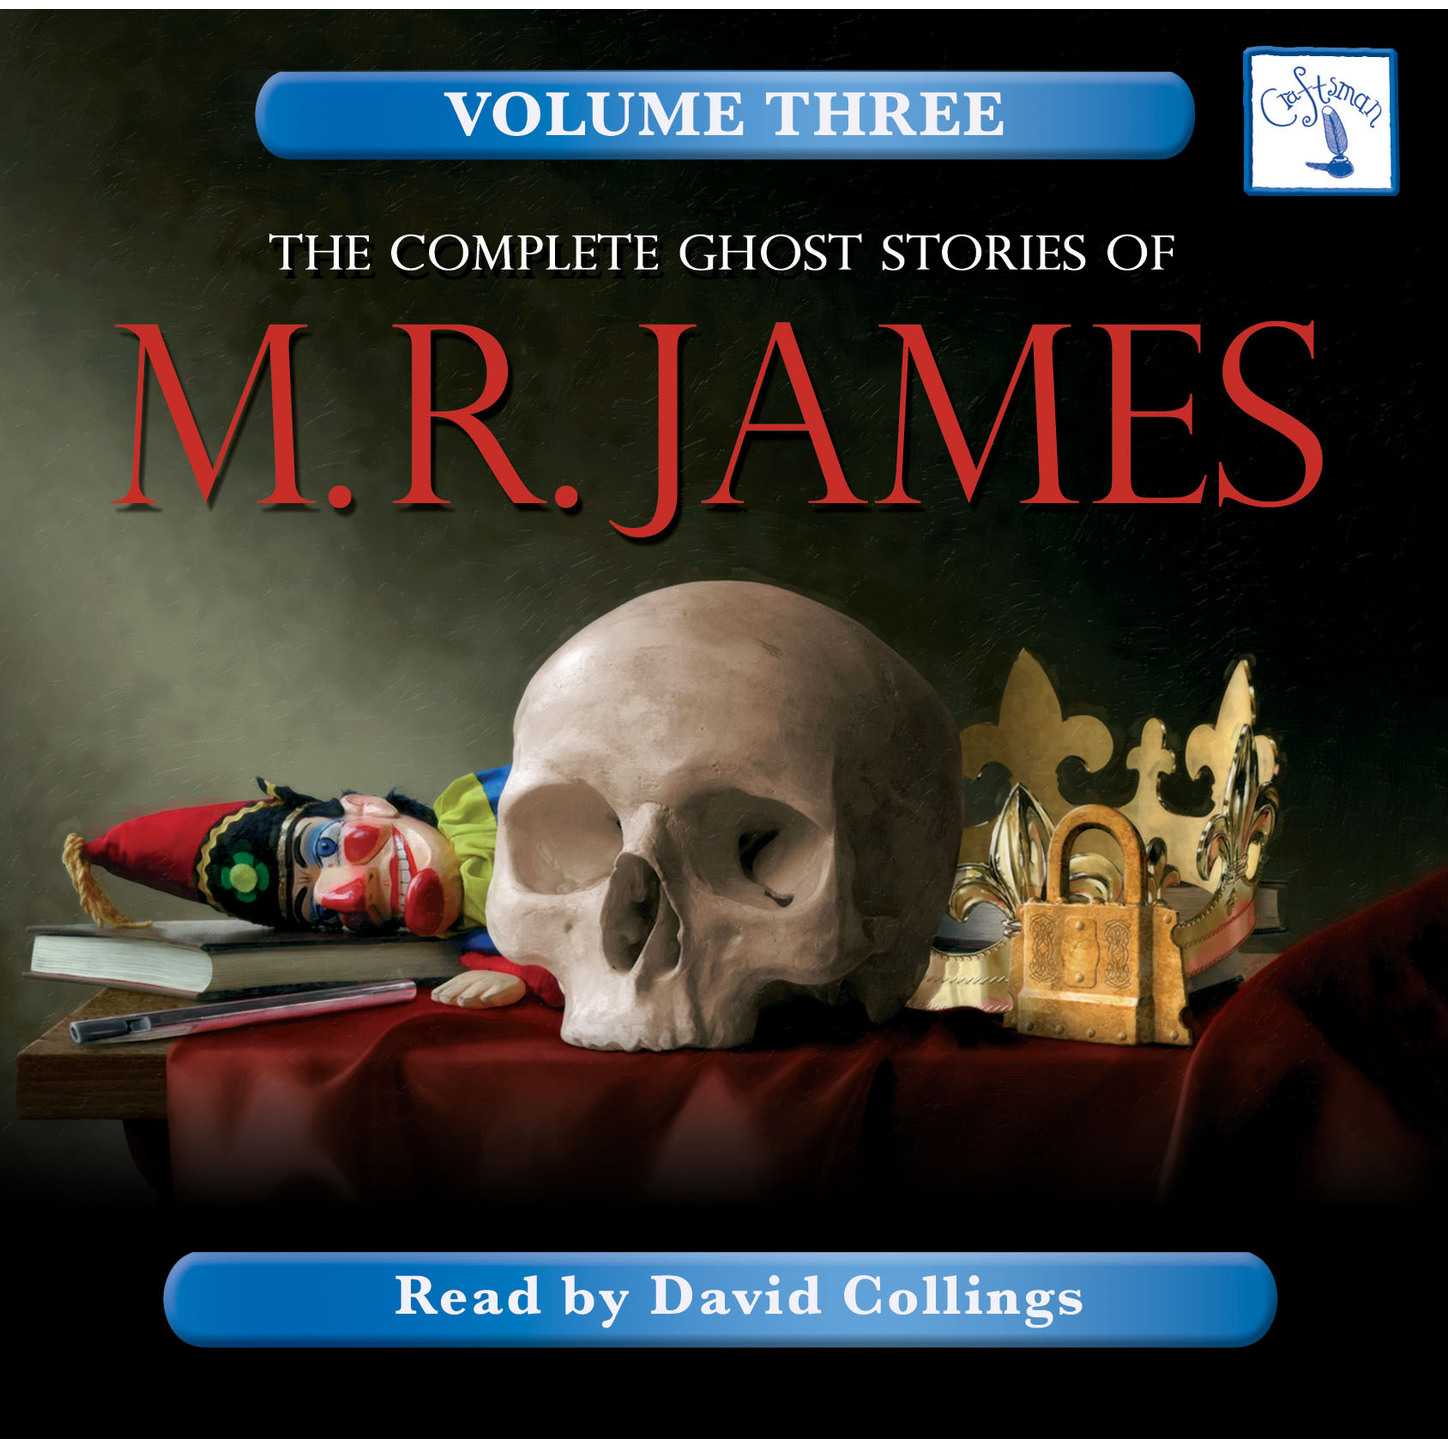 M. R. James The Complete Ghost Stories of M. R. James, Vol. 3 (Unabridged)